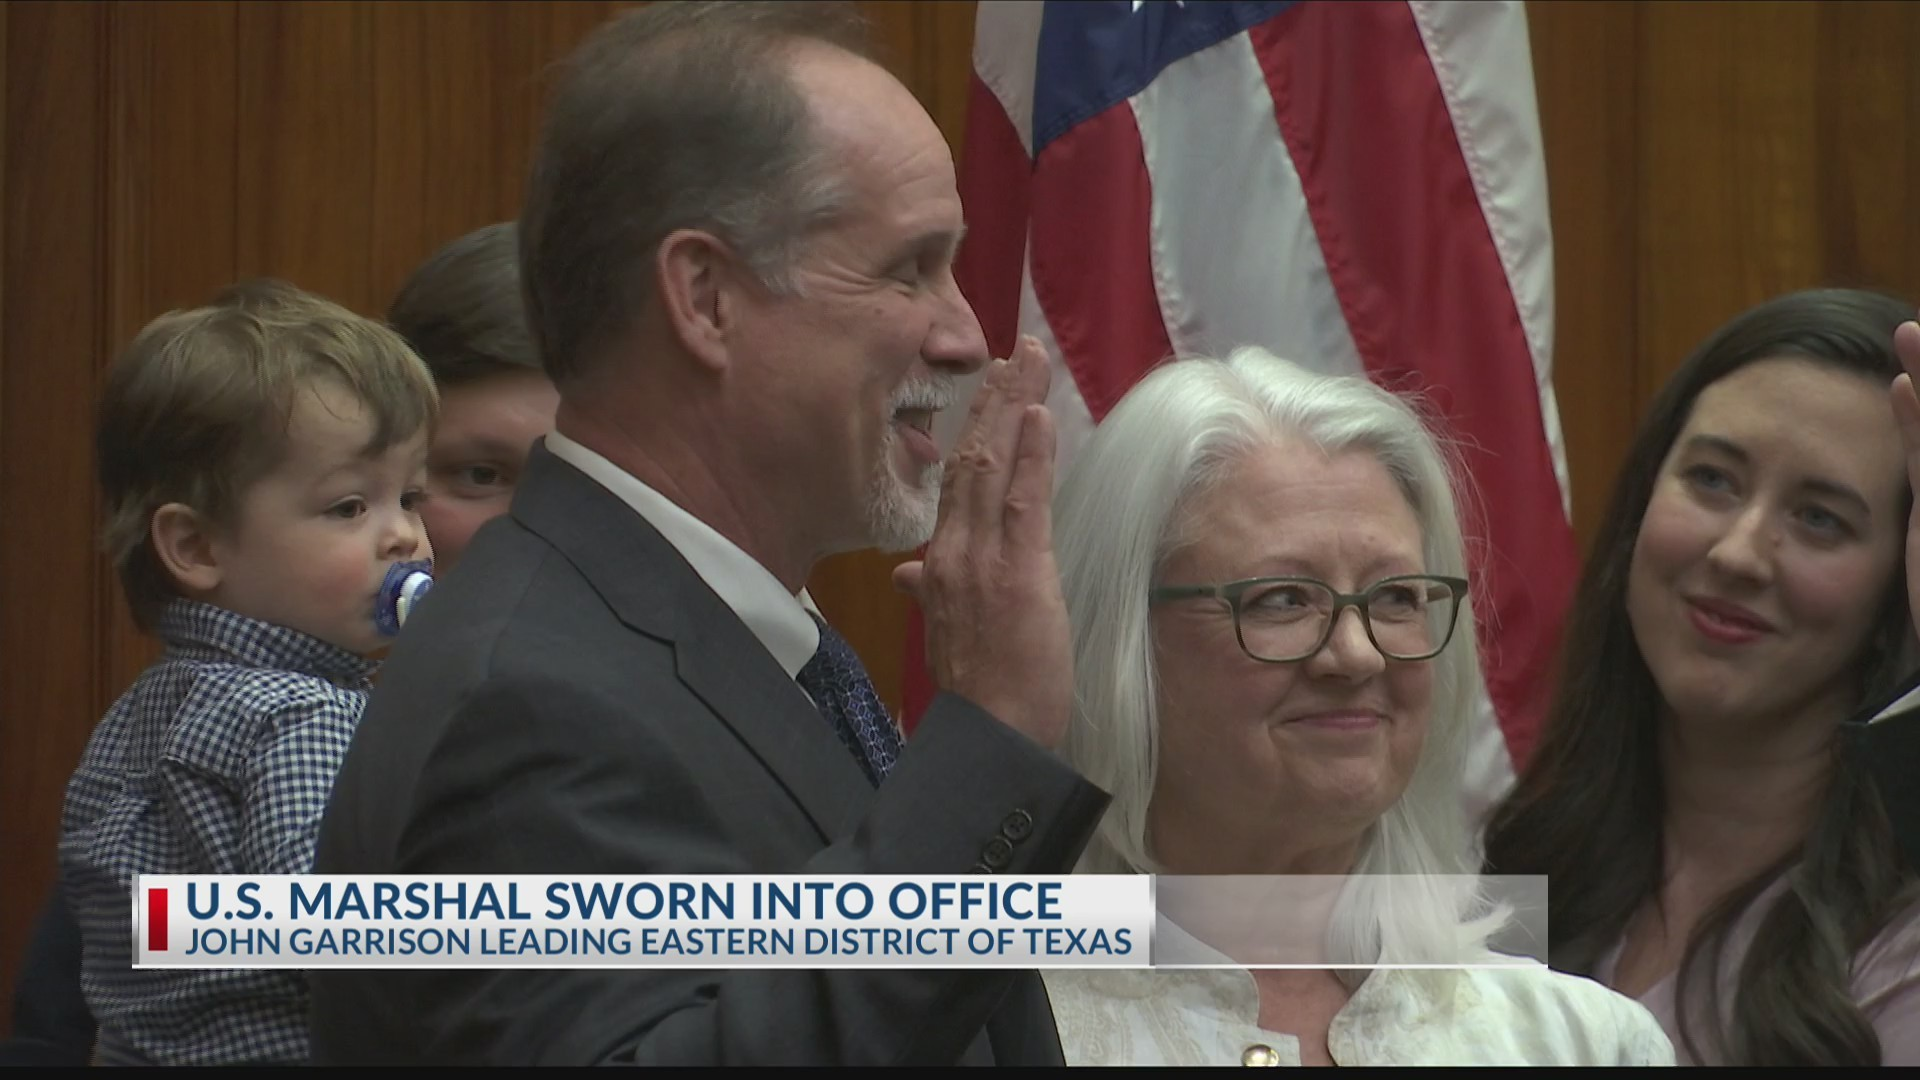 EXCLUSIVE: New U.S. Marshal sworn into office for Eastern District of Texas